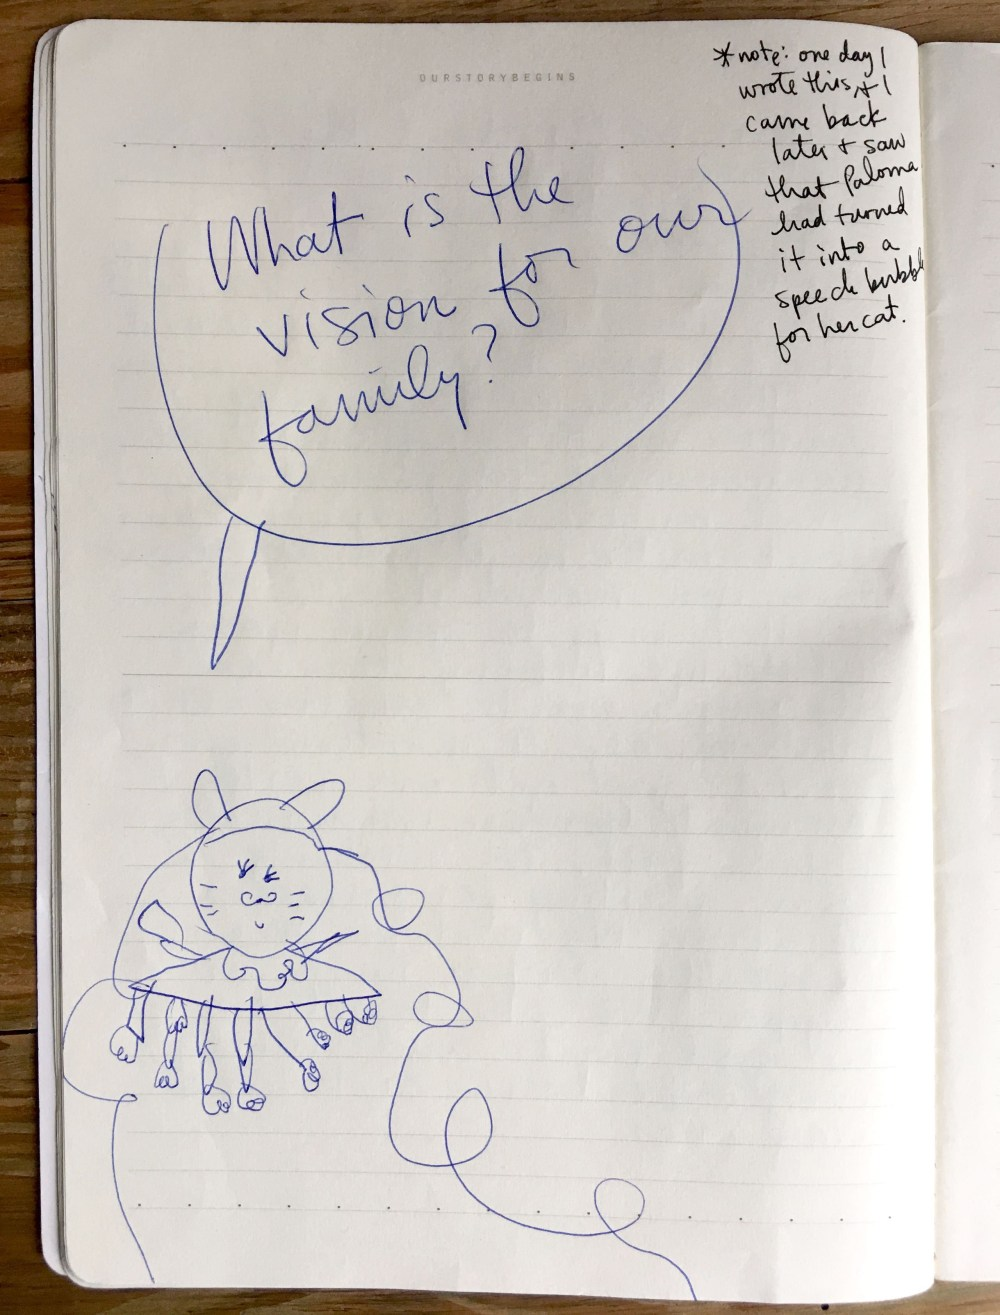 vision-journal-drawing.jpg